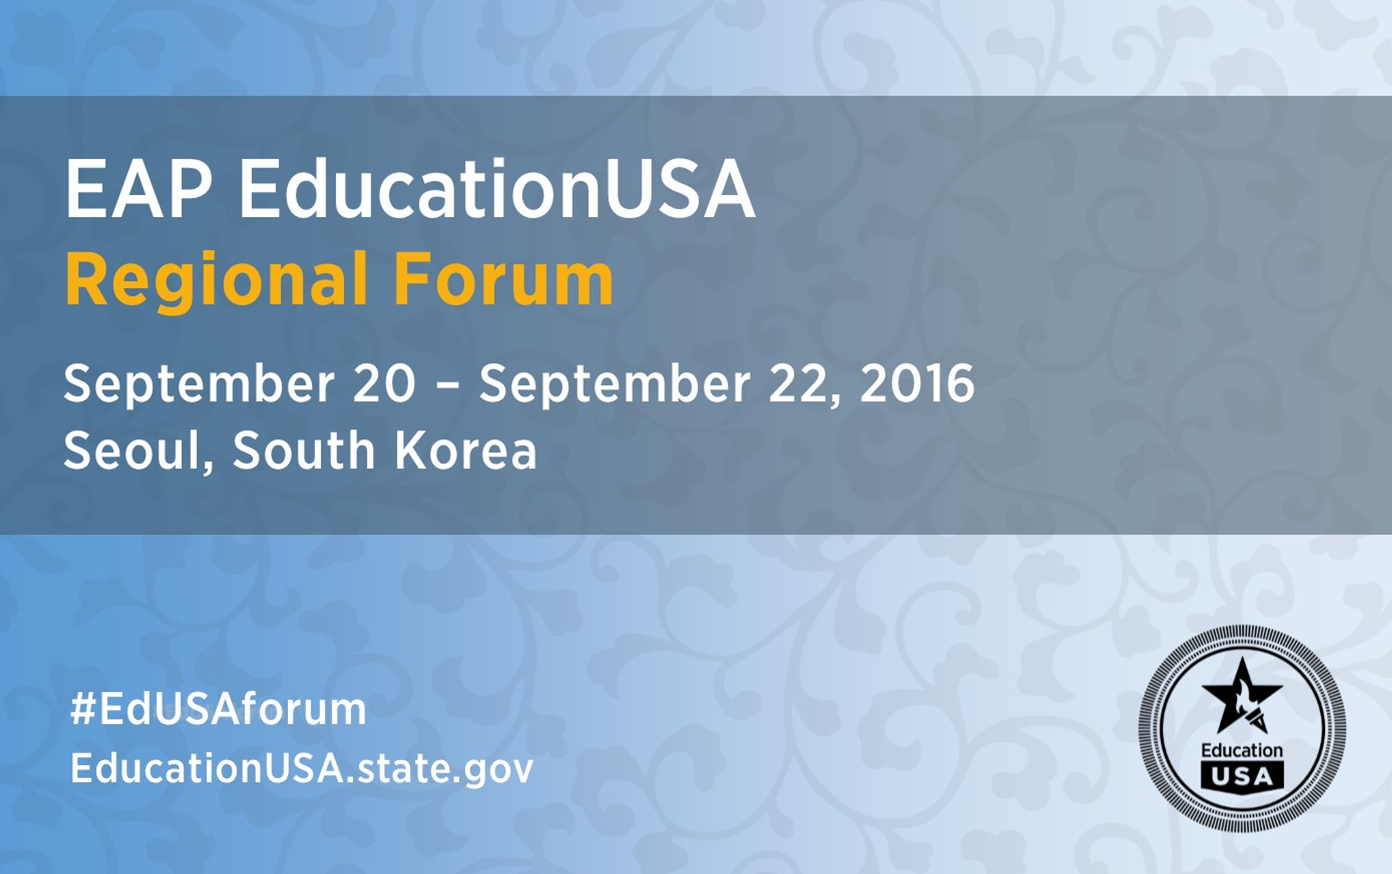 EducationUSA EAP Regional Forum 2016